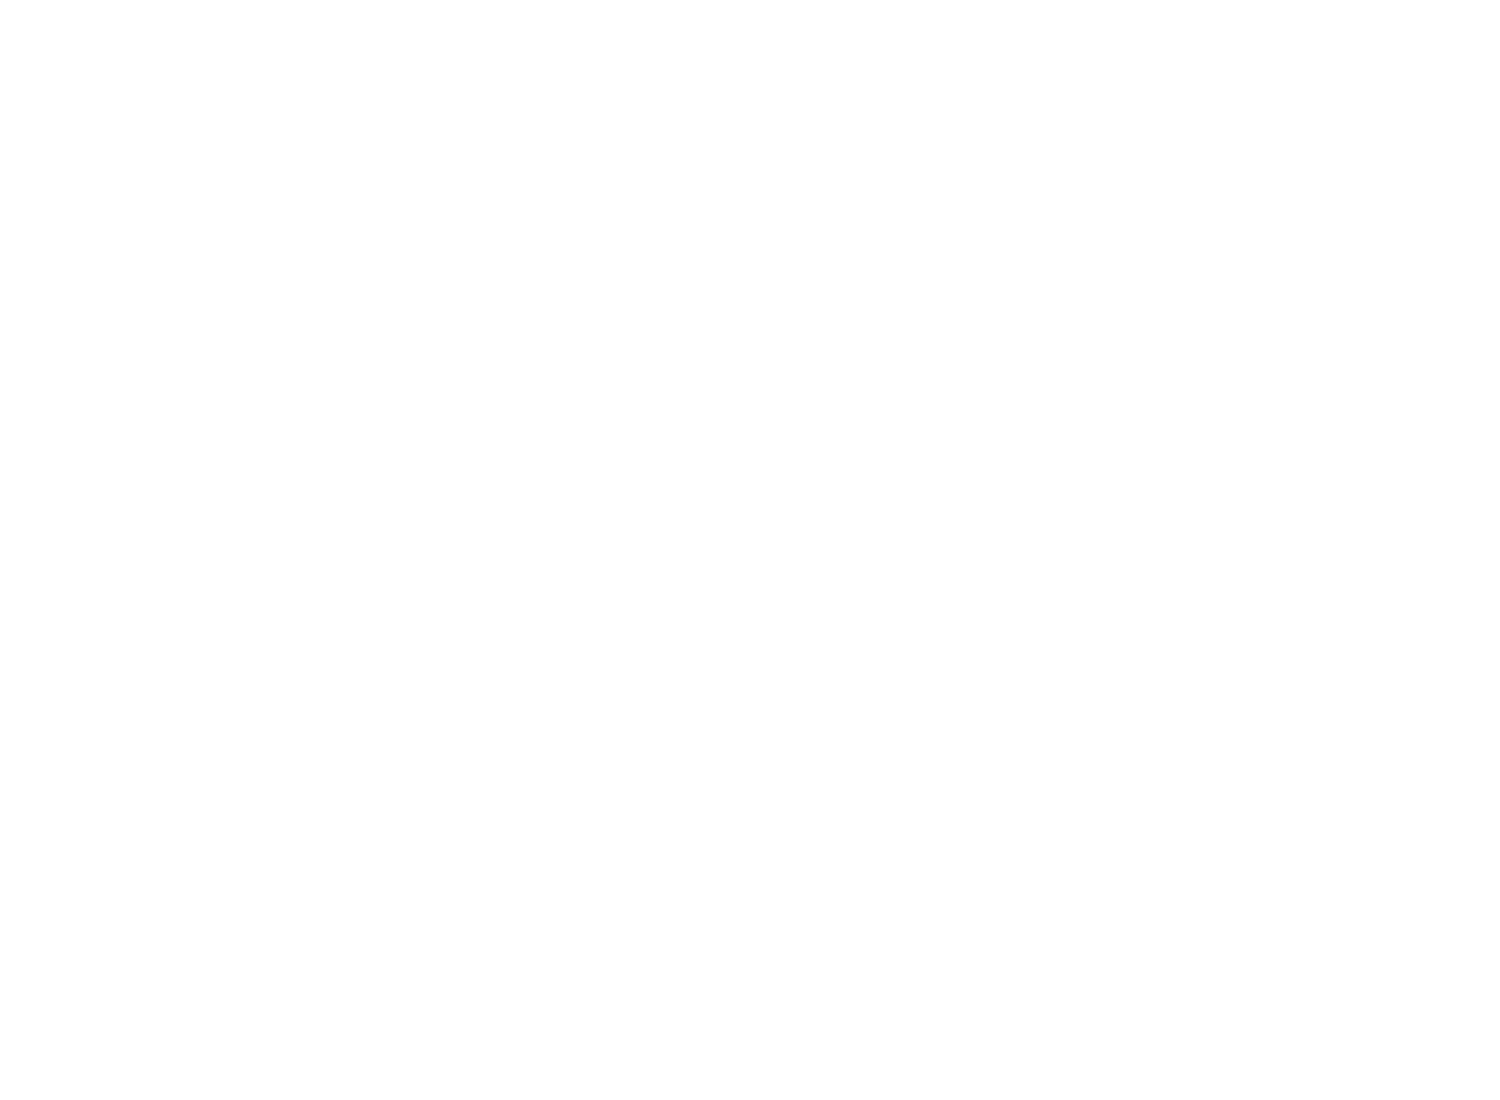 The Living Oceans